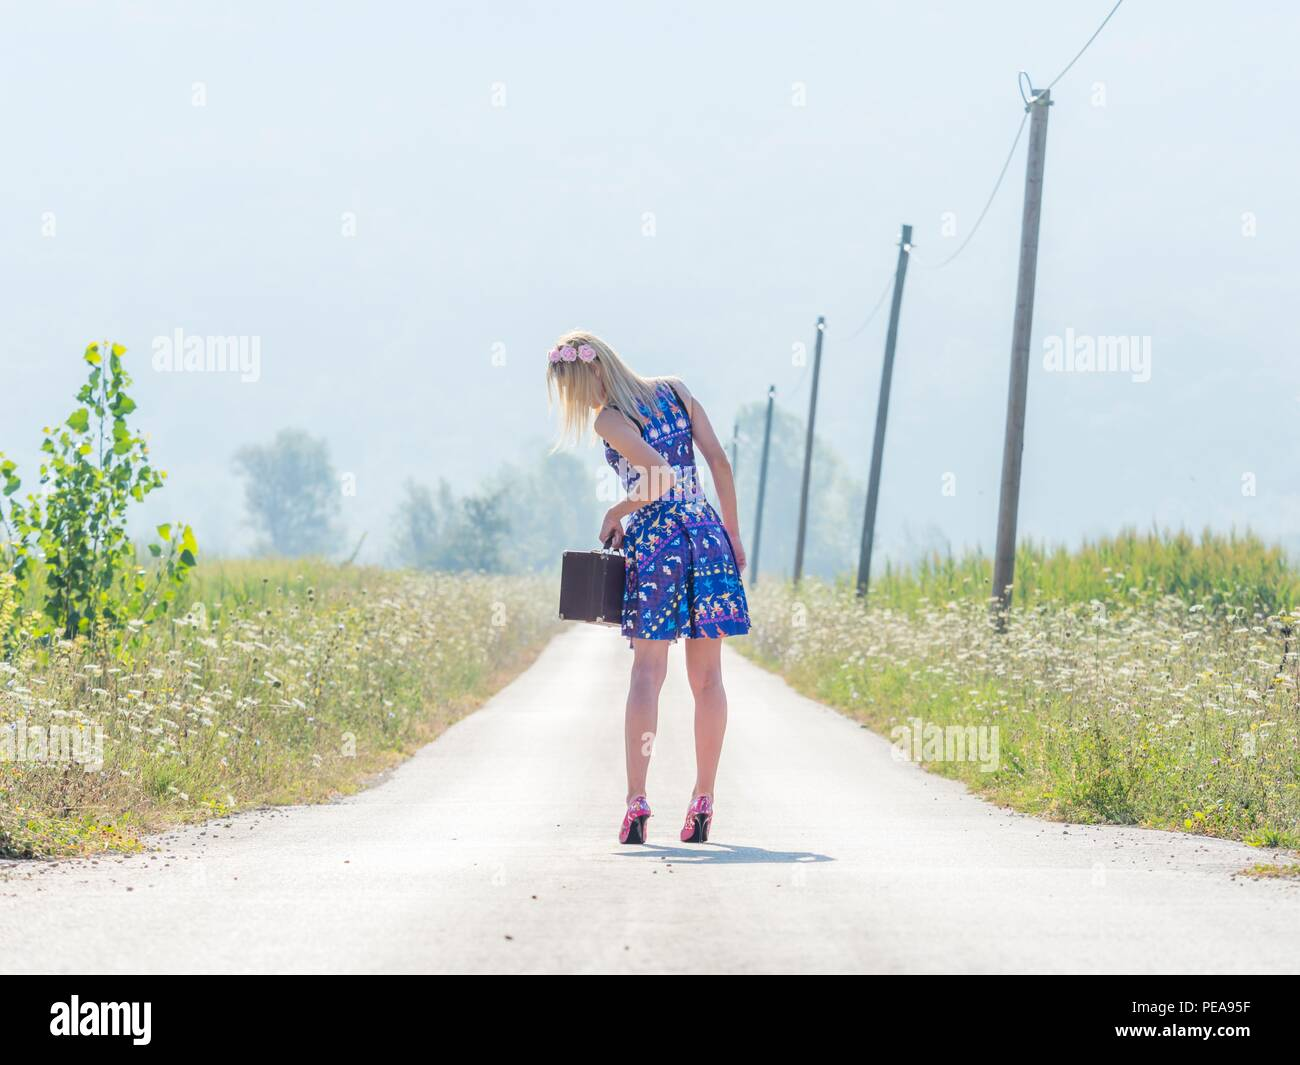 Sunlight mid-day 20s twenties attractive adult young woman outdoors run-away Stock Photo